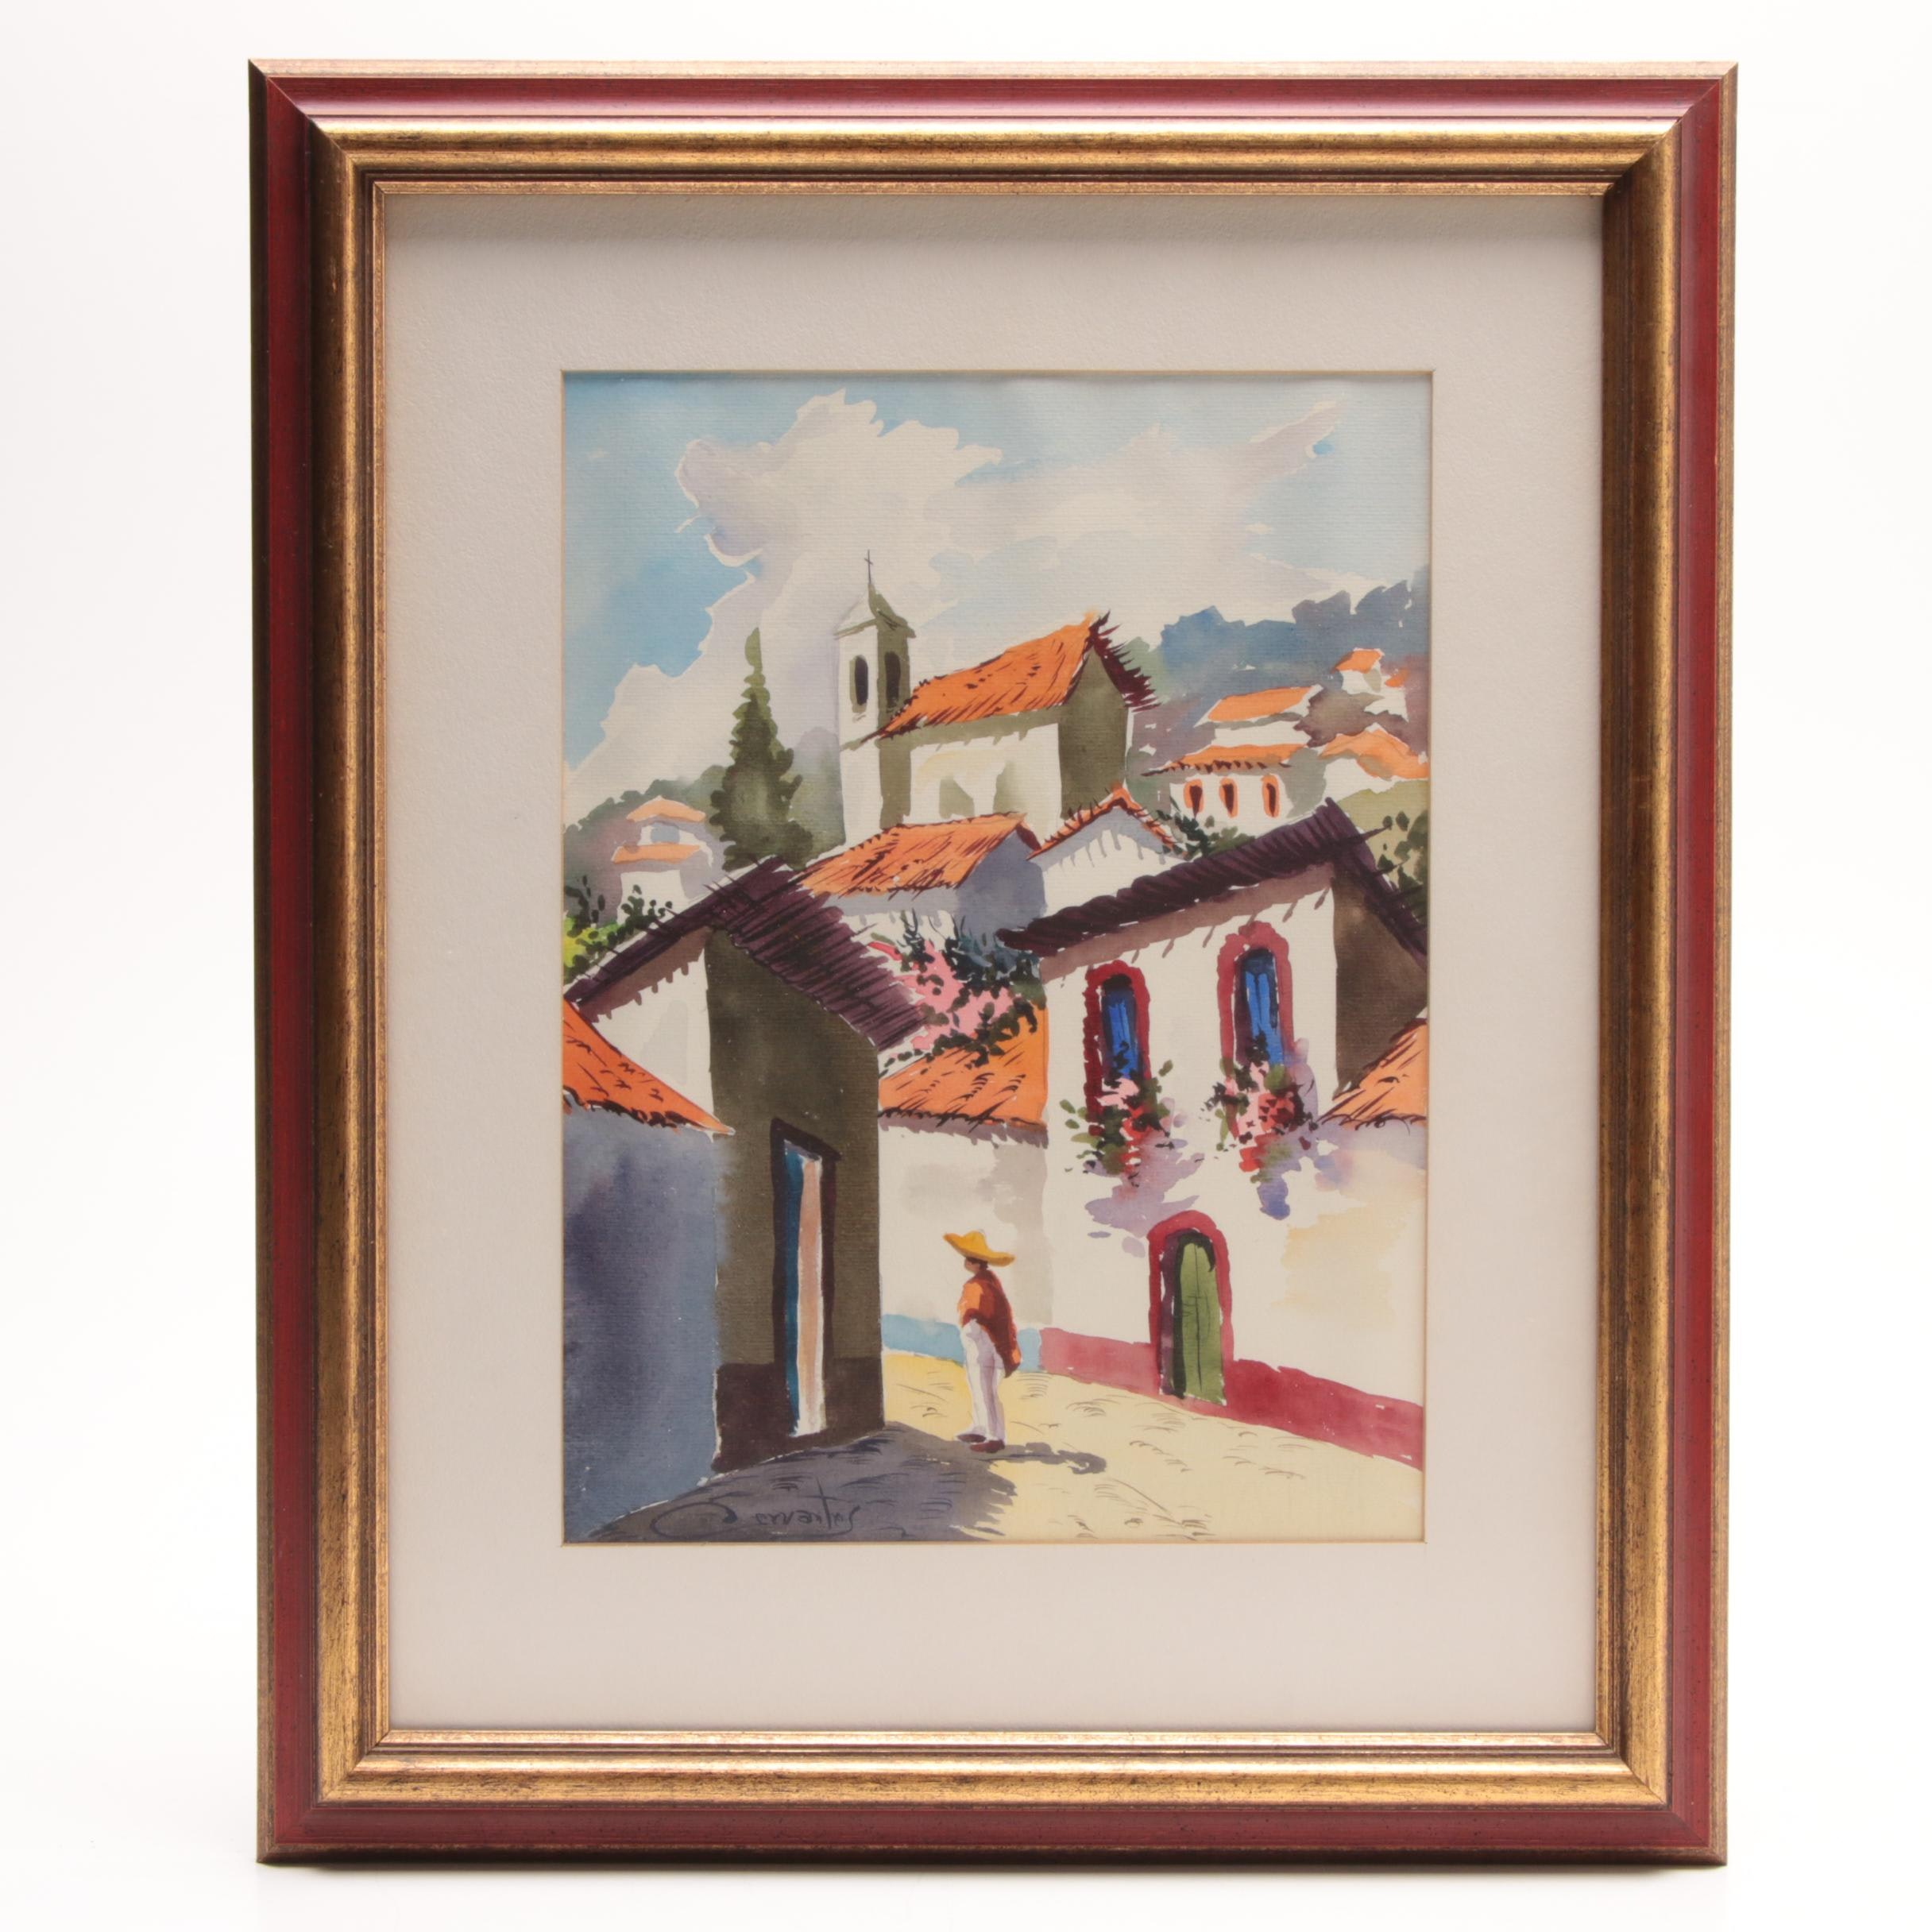 Cervantes Watercolor Painting of South American Townscape